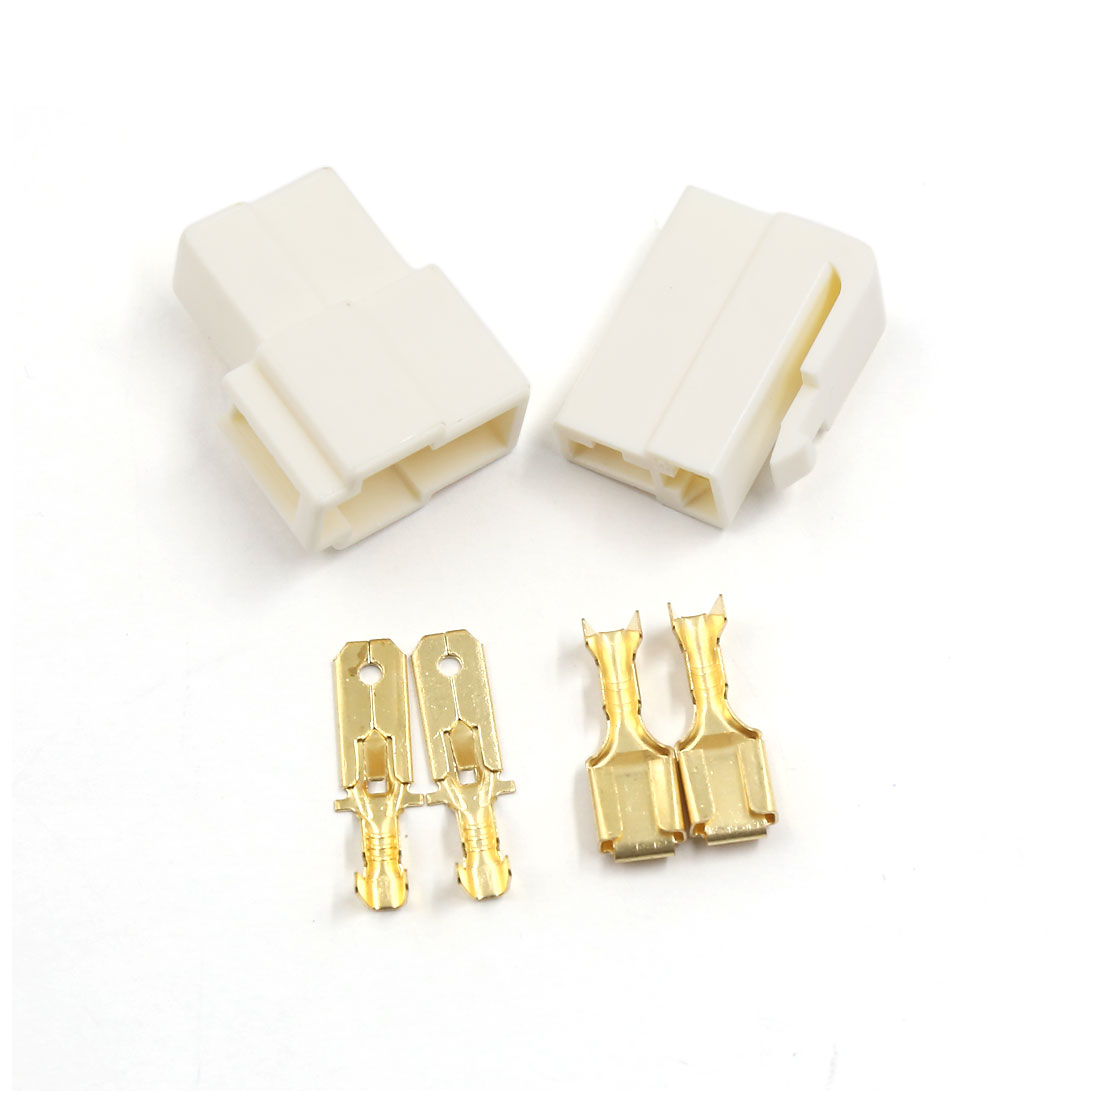 "2 Sets Nylon Latching Connector 2-way 6.3mm 1/4"" Male/Female 18-14AWG Wiring Plug"